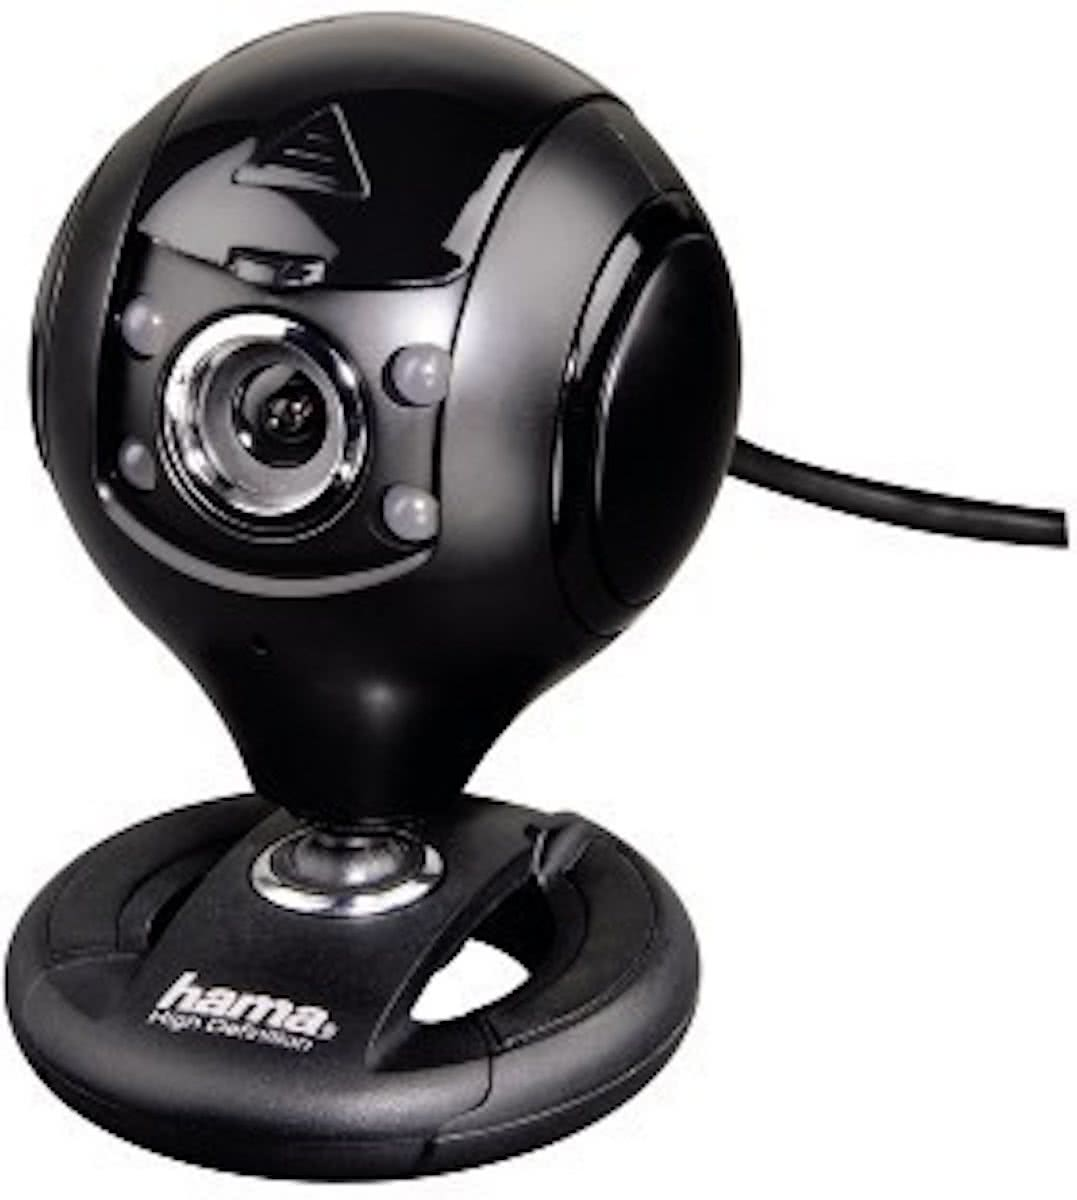 00053950 1.3MP 1280 x 1024Pixels USB 2.0 Zwart webcam